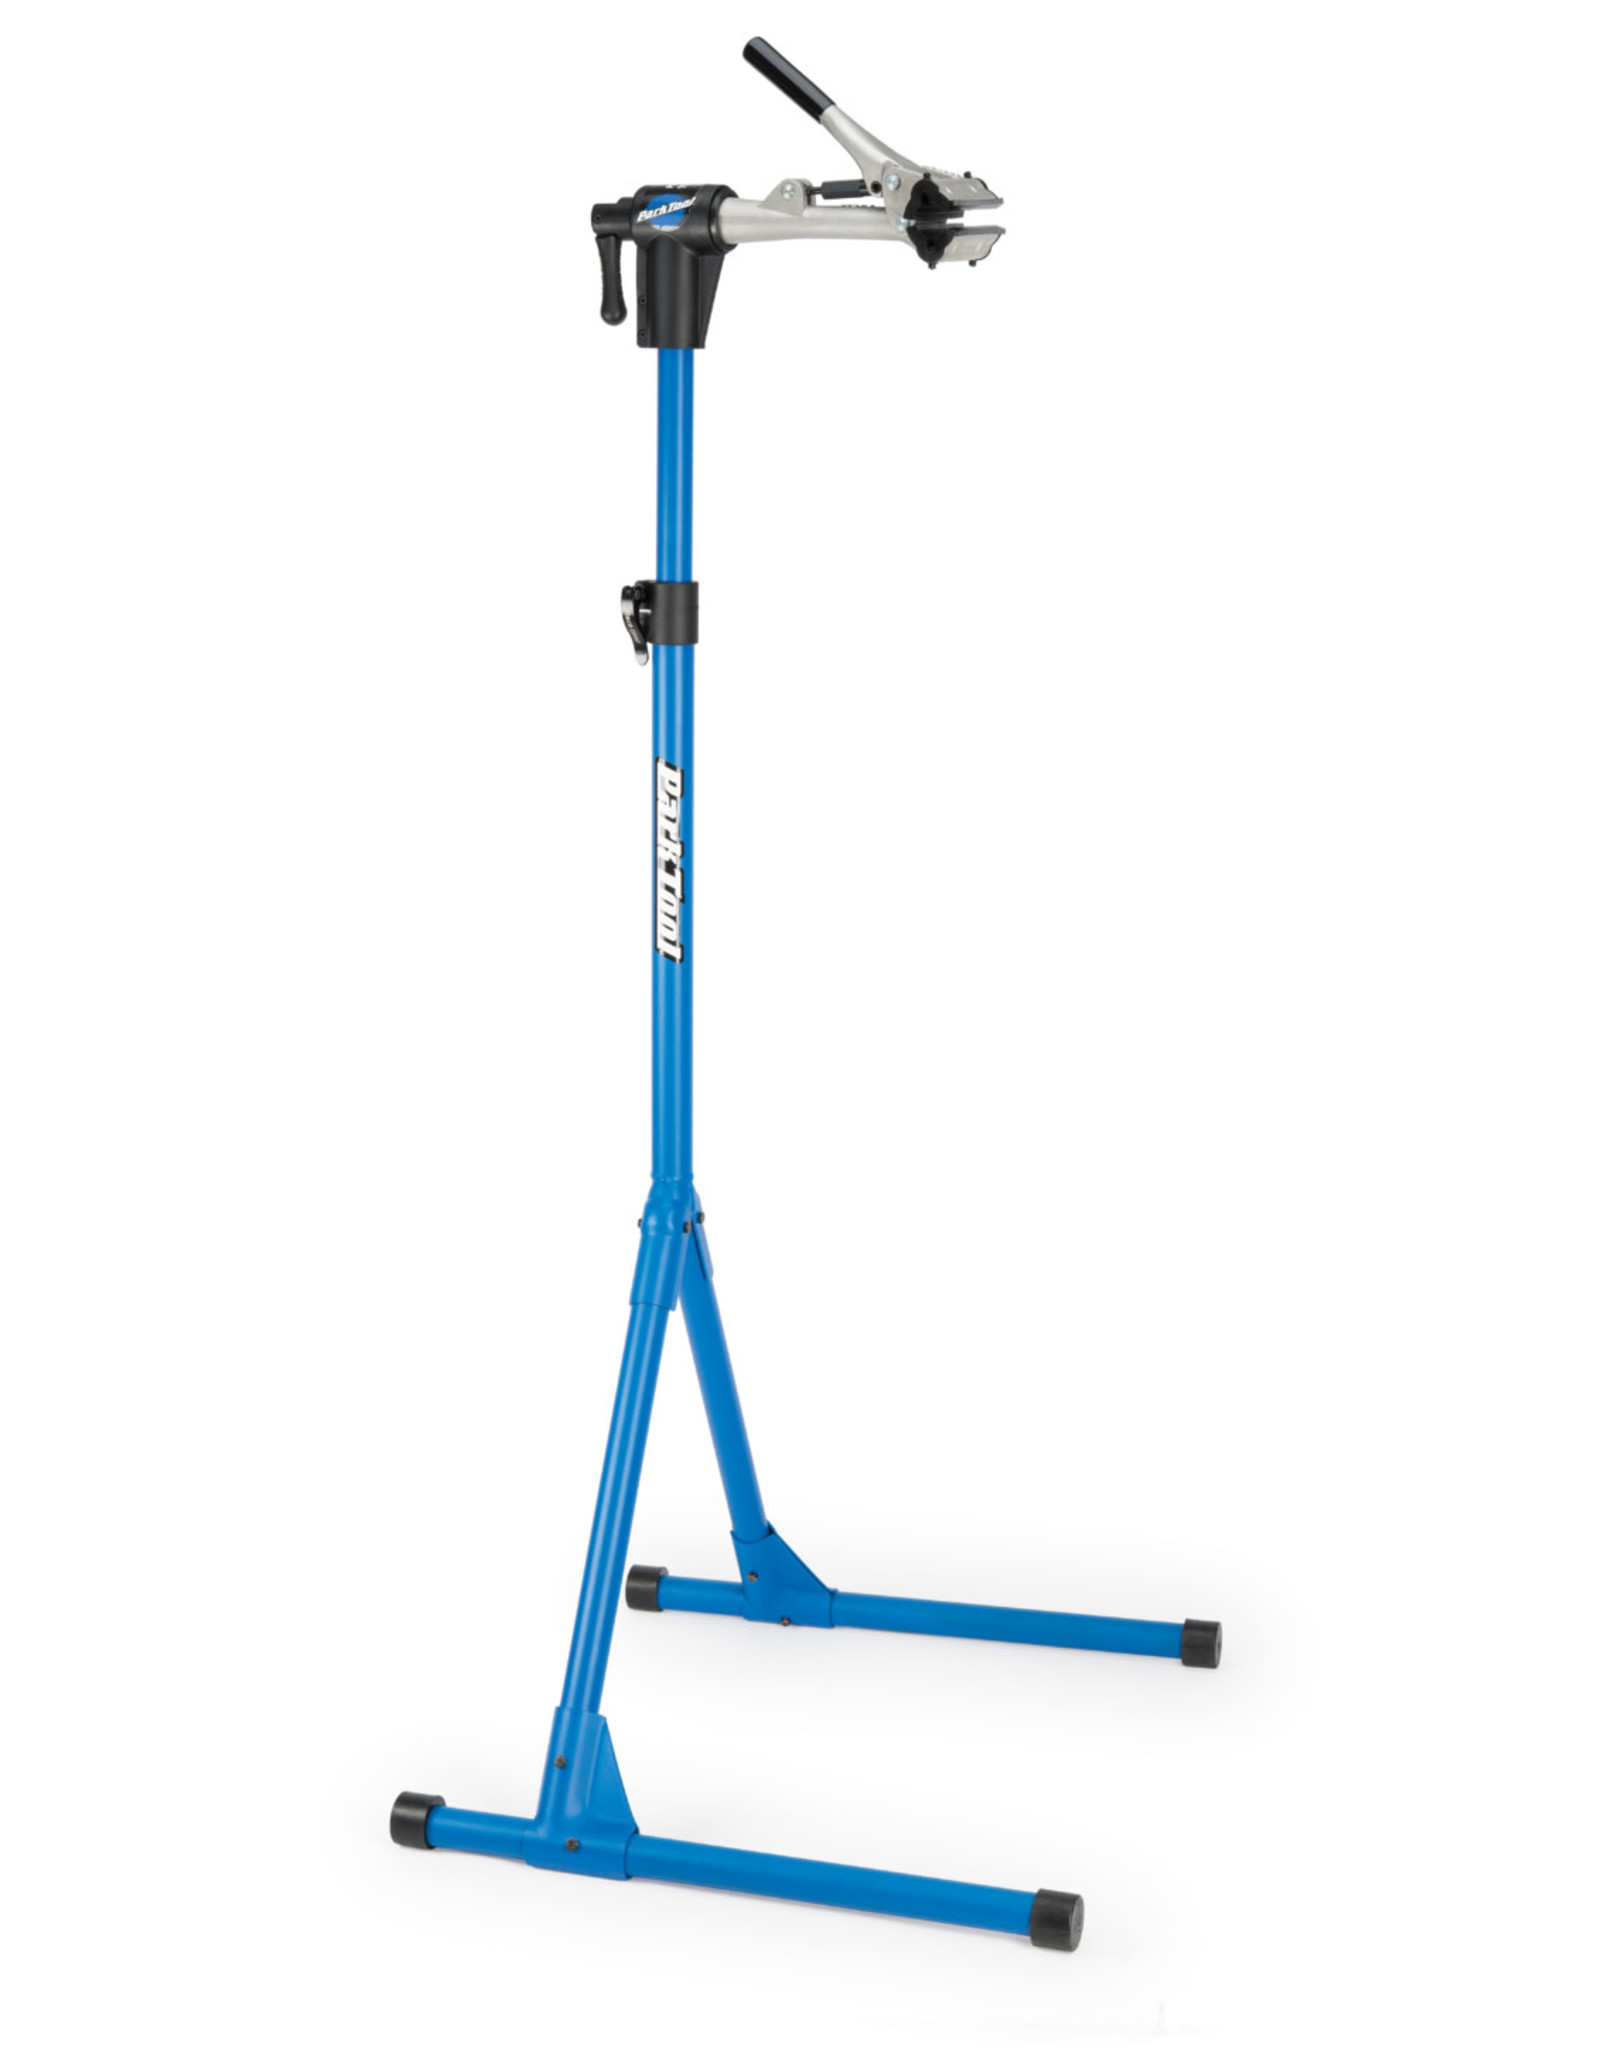 PARK TOOL PCS-4-1, Deluxe home mechanic repair stand with 100-5C clamp